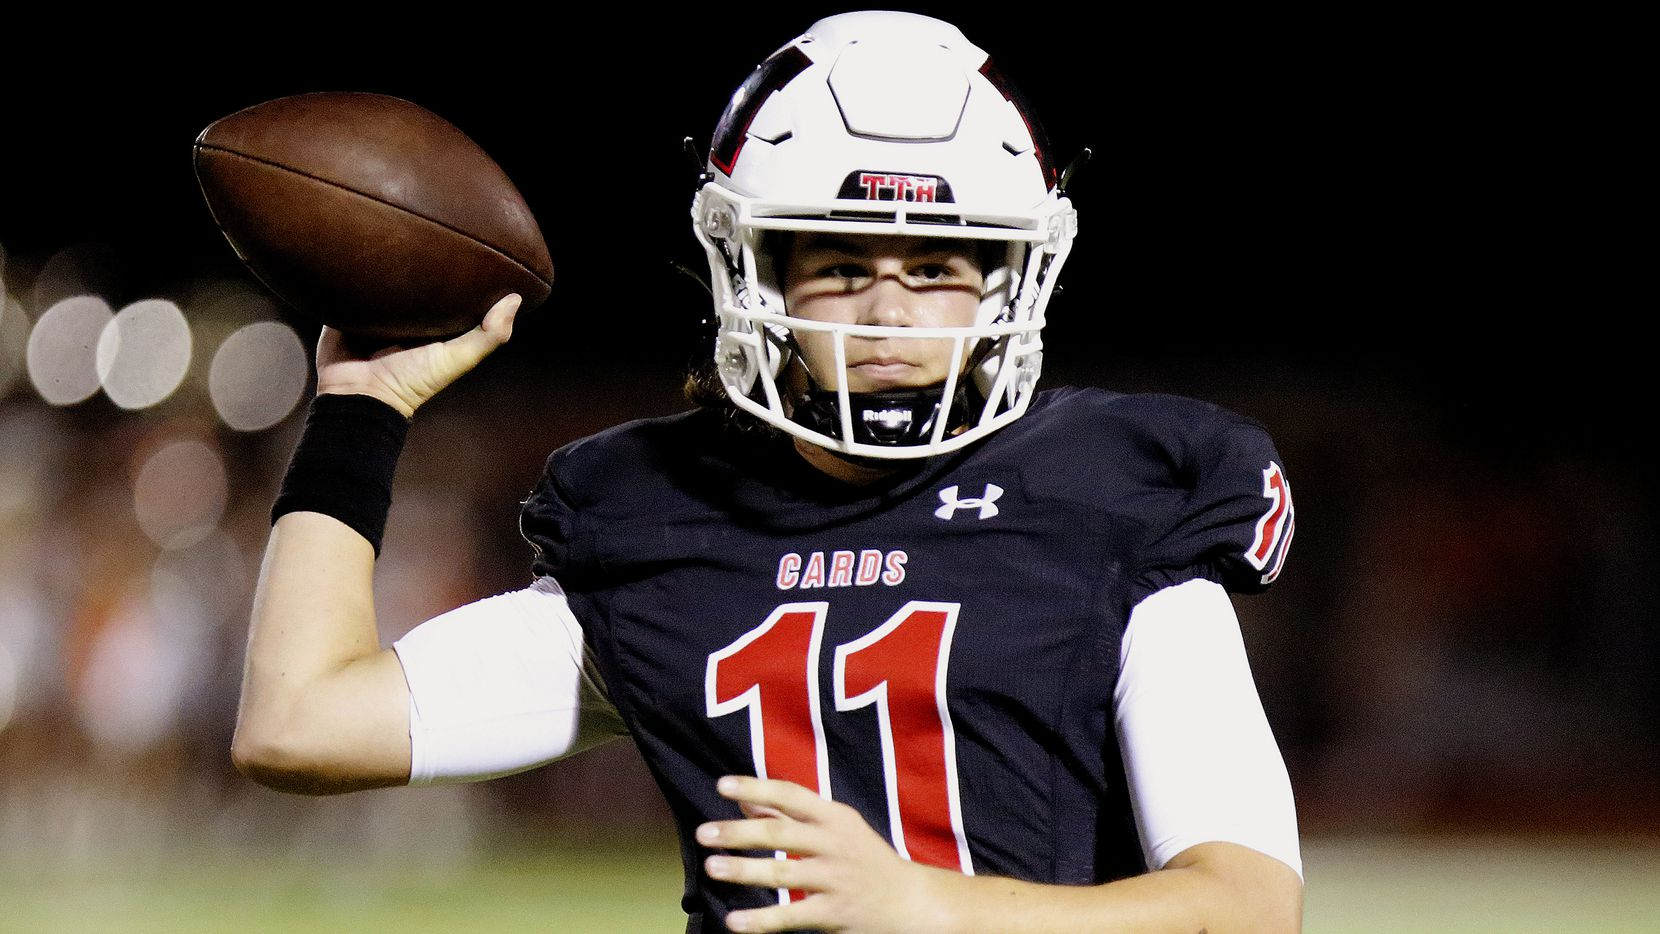 Melissa High School quarterback Sam Fennegan (11) throws a pass during the first half as Melissa High School hosted Celina High School at Cardinal Field in Melissa on Friday night, August 27, 2021.